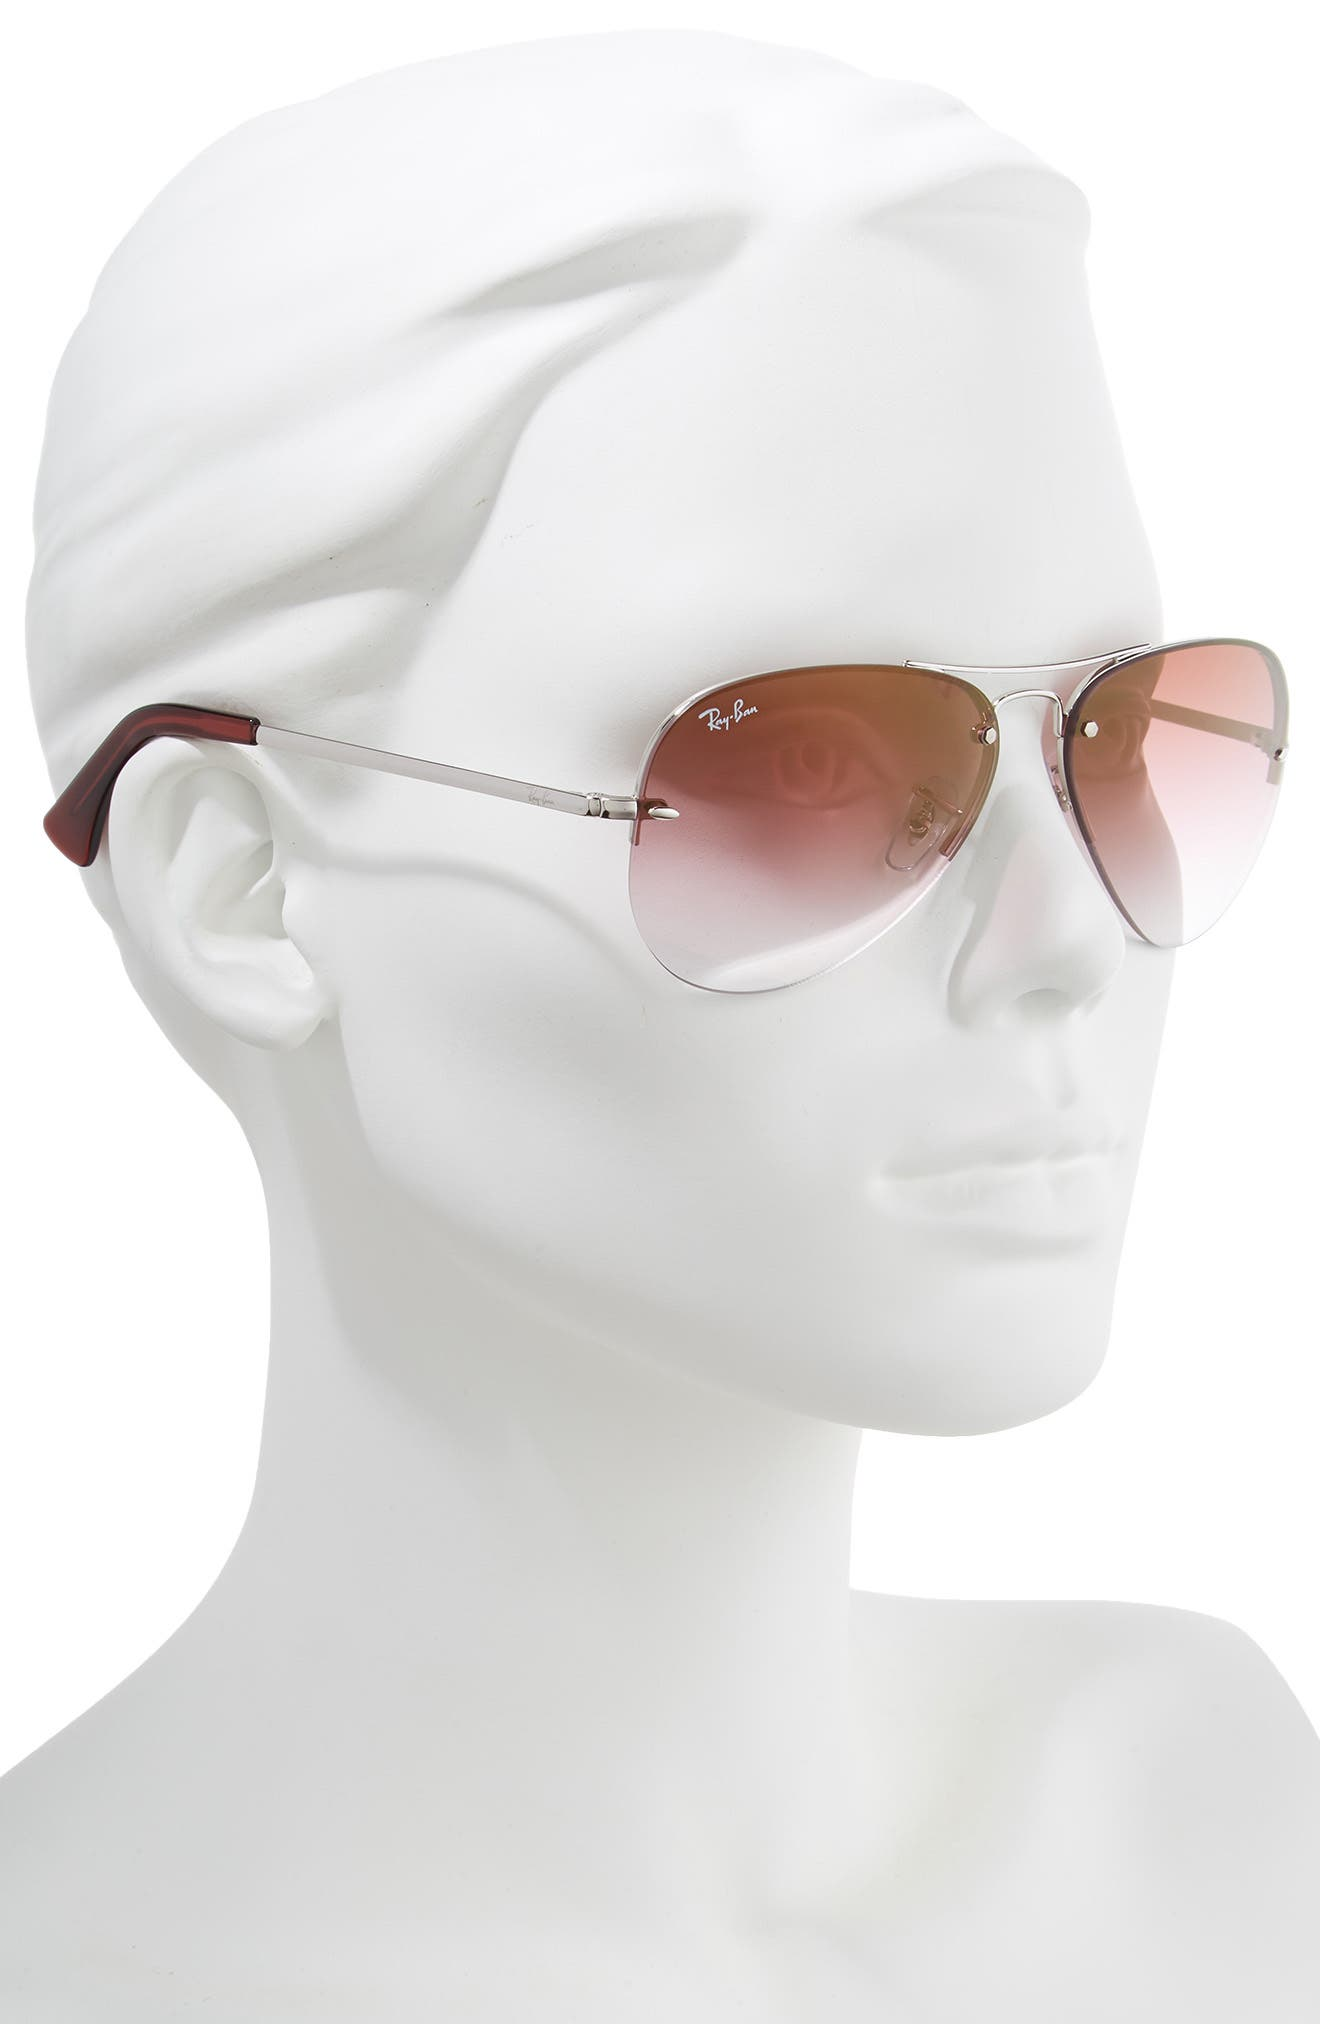 Highstreet 59mm Semi Rimless Aviator Sunglasses,                             Alternate thumbnail 2, color,                             SILVER/ BORDEAUX GRADIENT